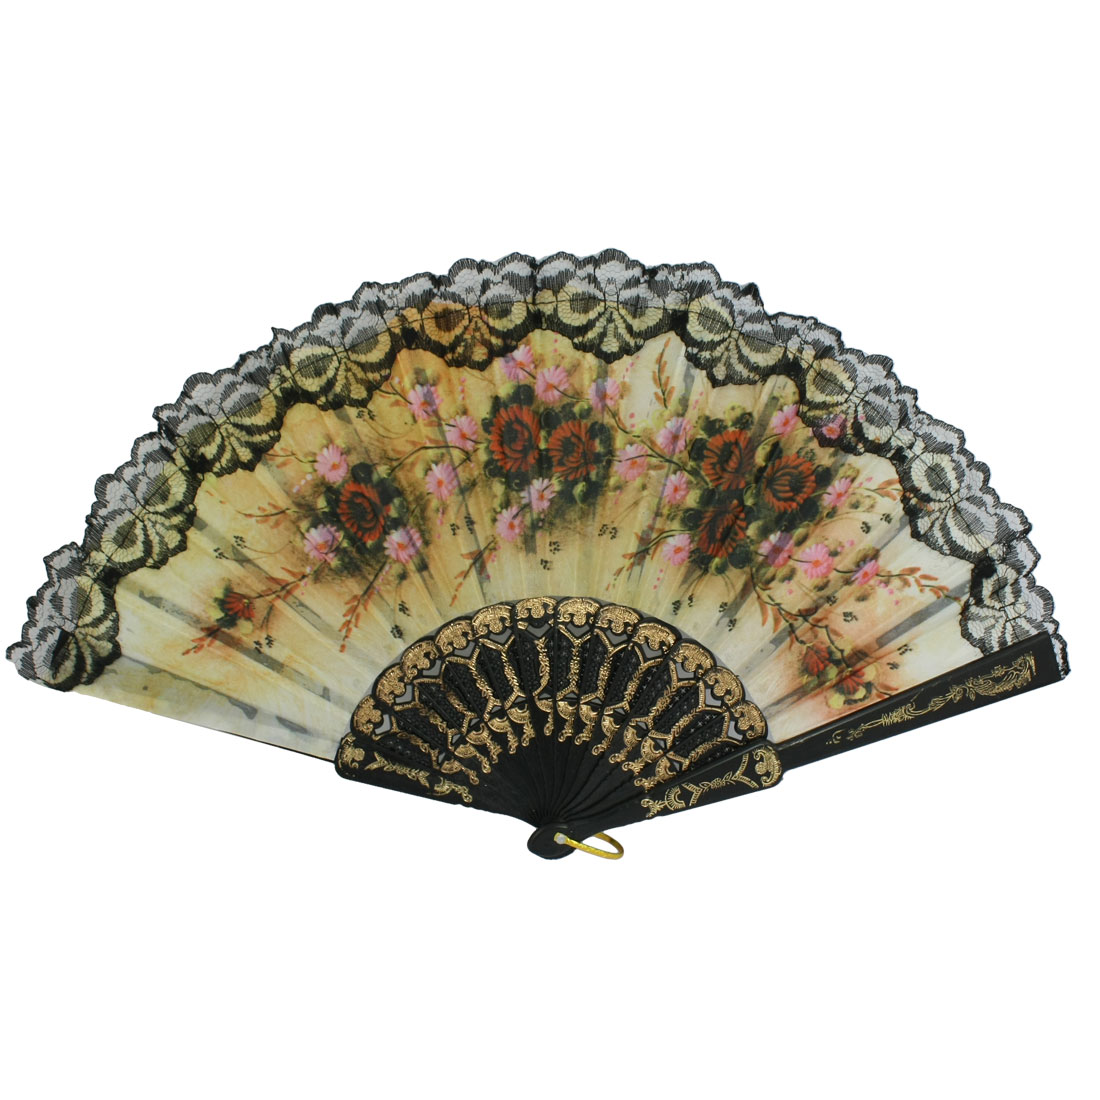 Ladies White Lace Chrysanthemum Printed Cloth Folding Hand Fan Black